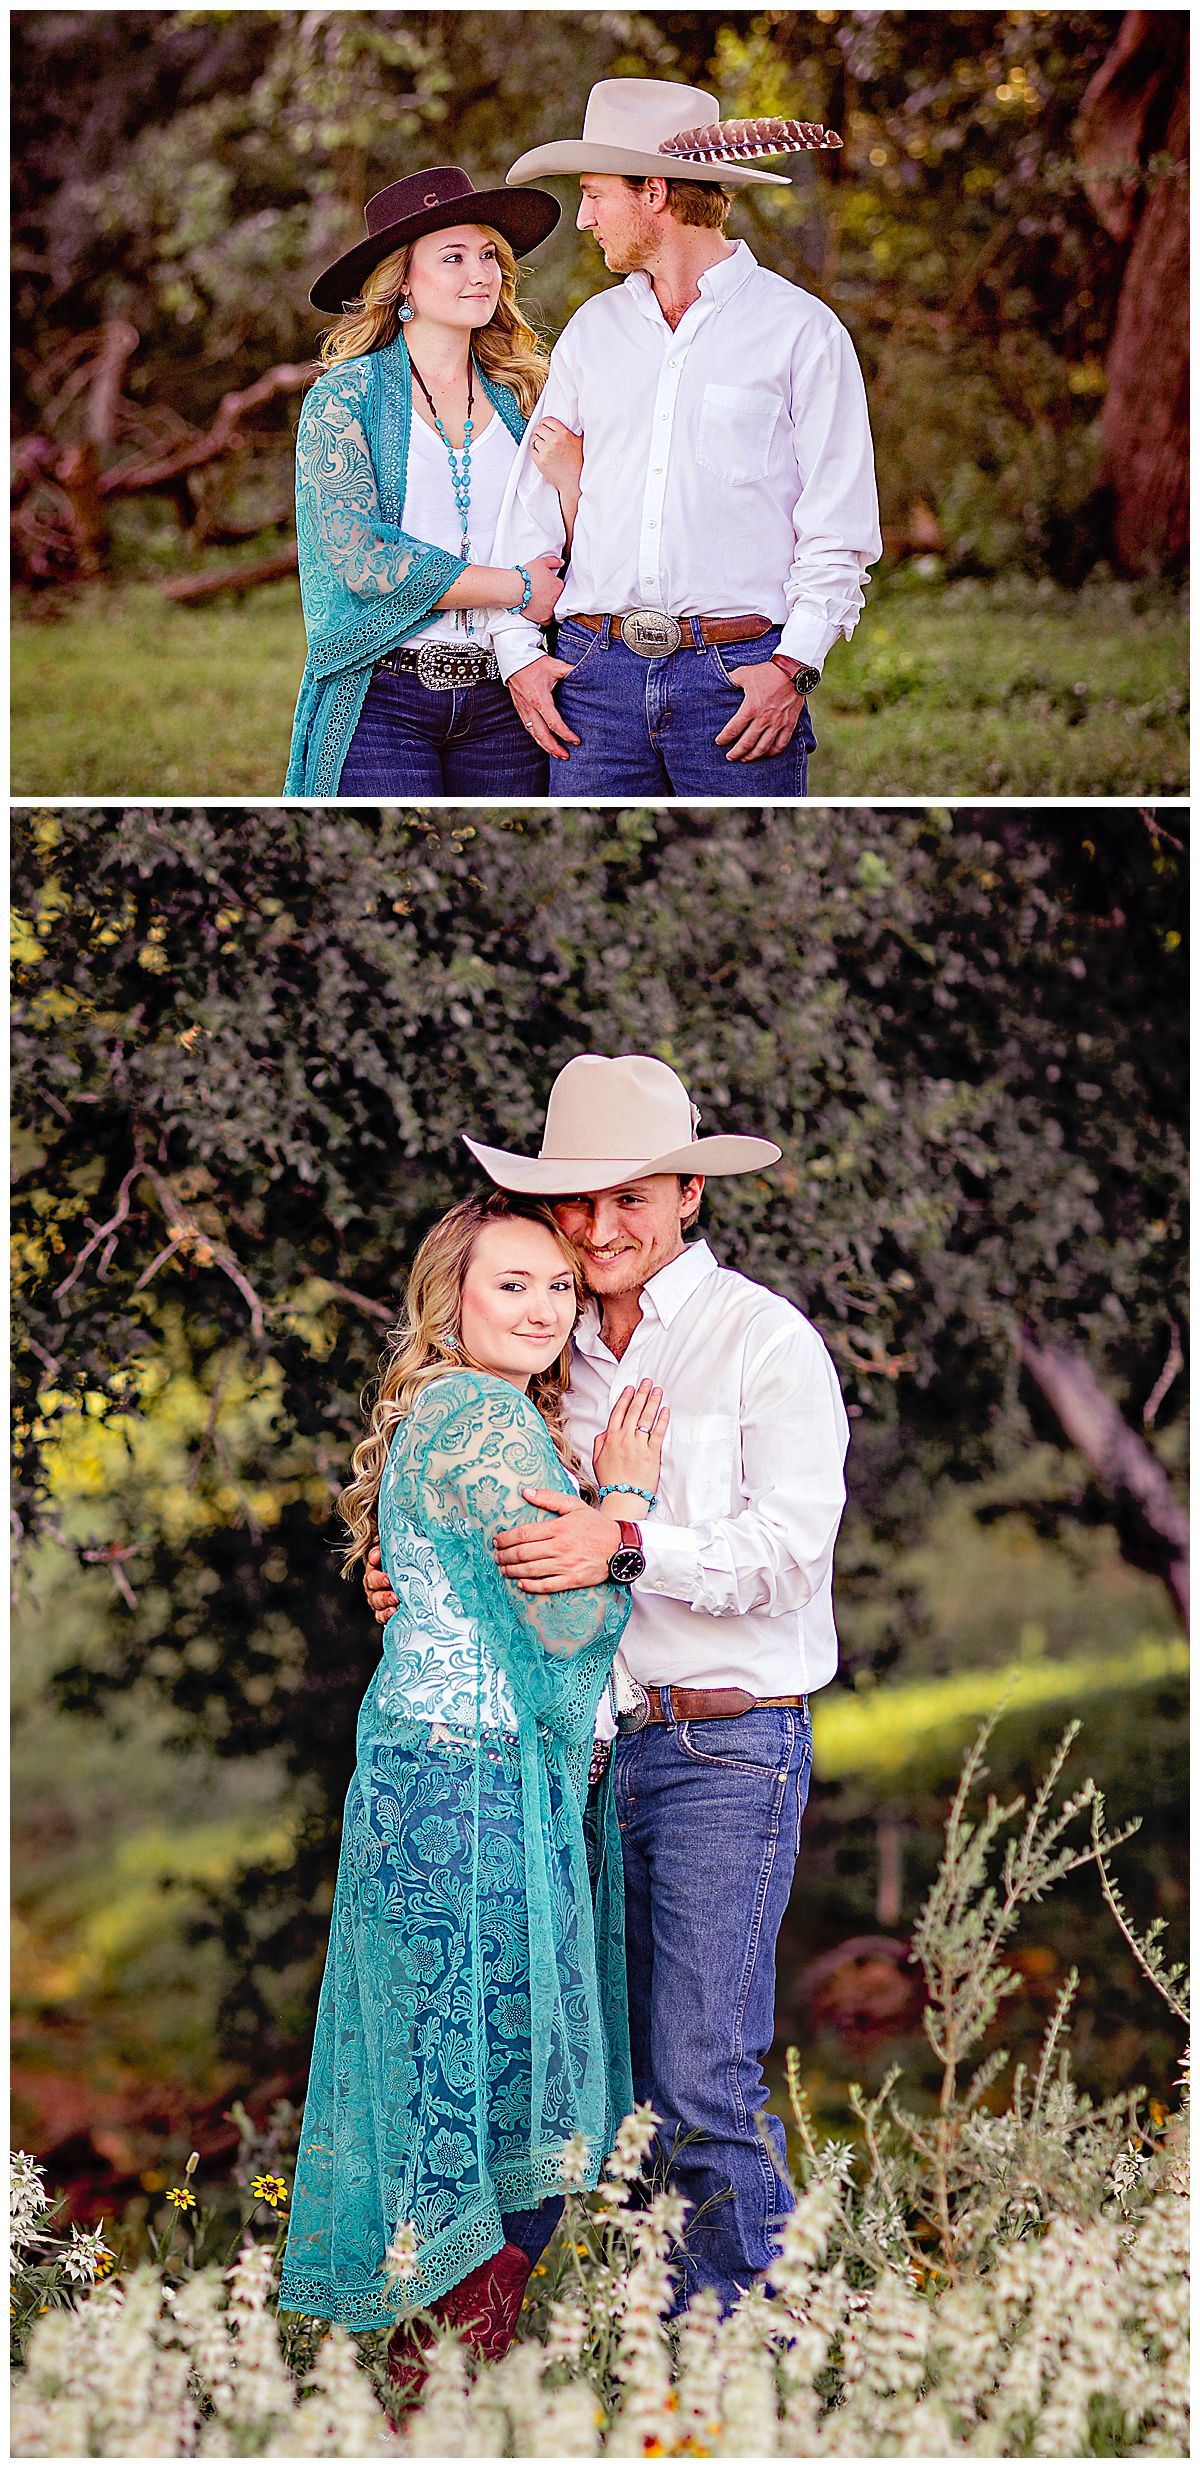 Rustic-Engagement-Session-Horse-Texas-Sunset-Carly-Barton-Photography_0014.jpg